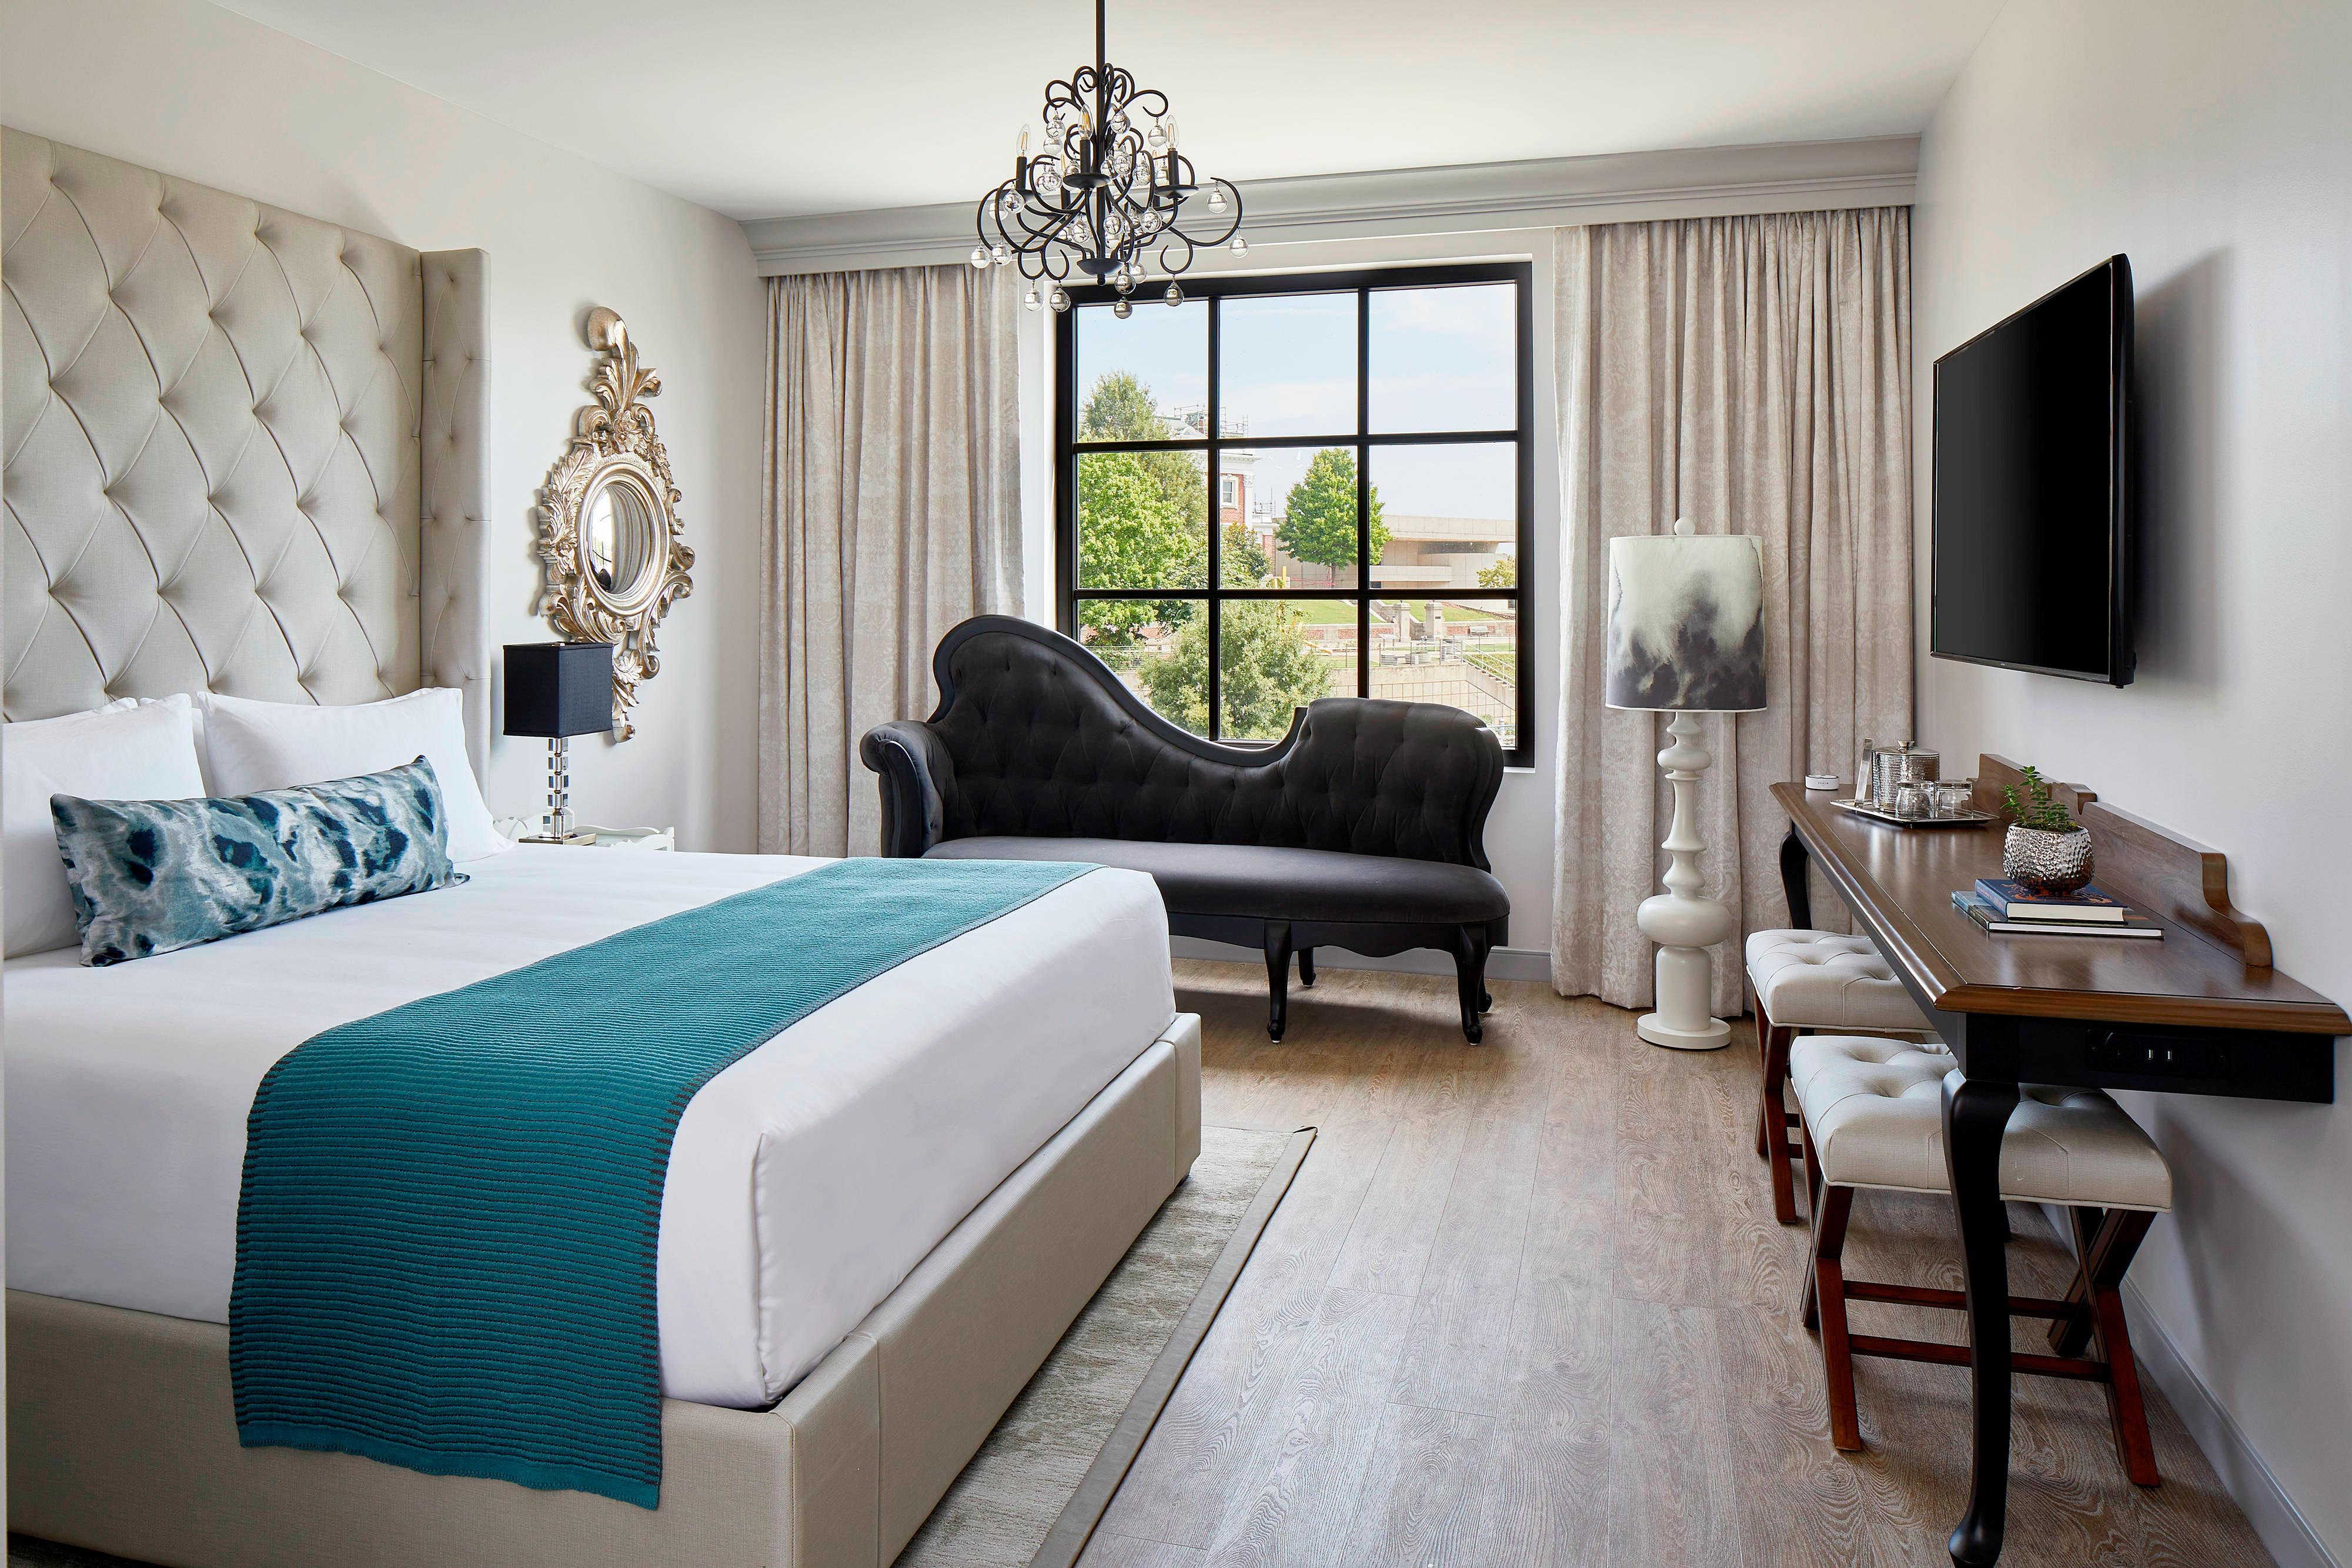 King Bluff Arts View Guest Room